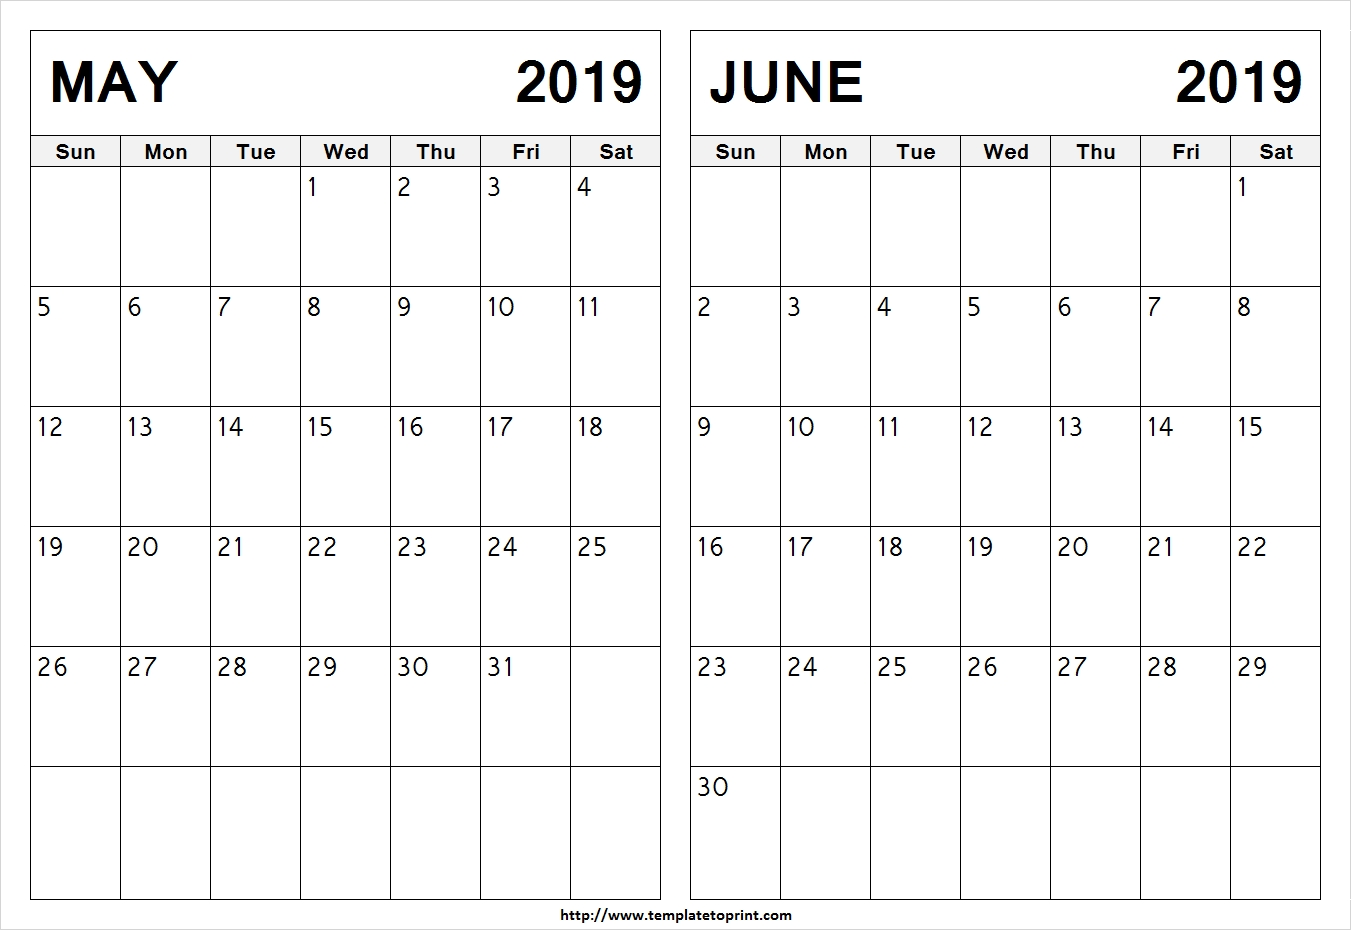 May-June-Calendar-2019-To-Print » Template To Print Calendar 2019 May June